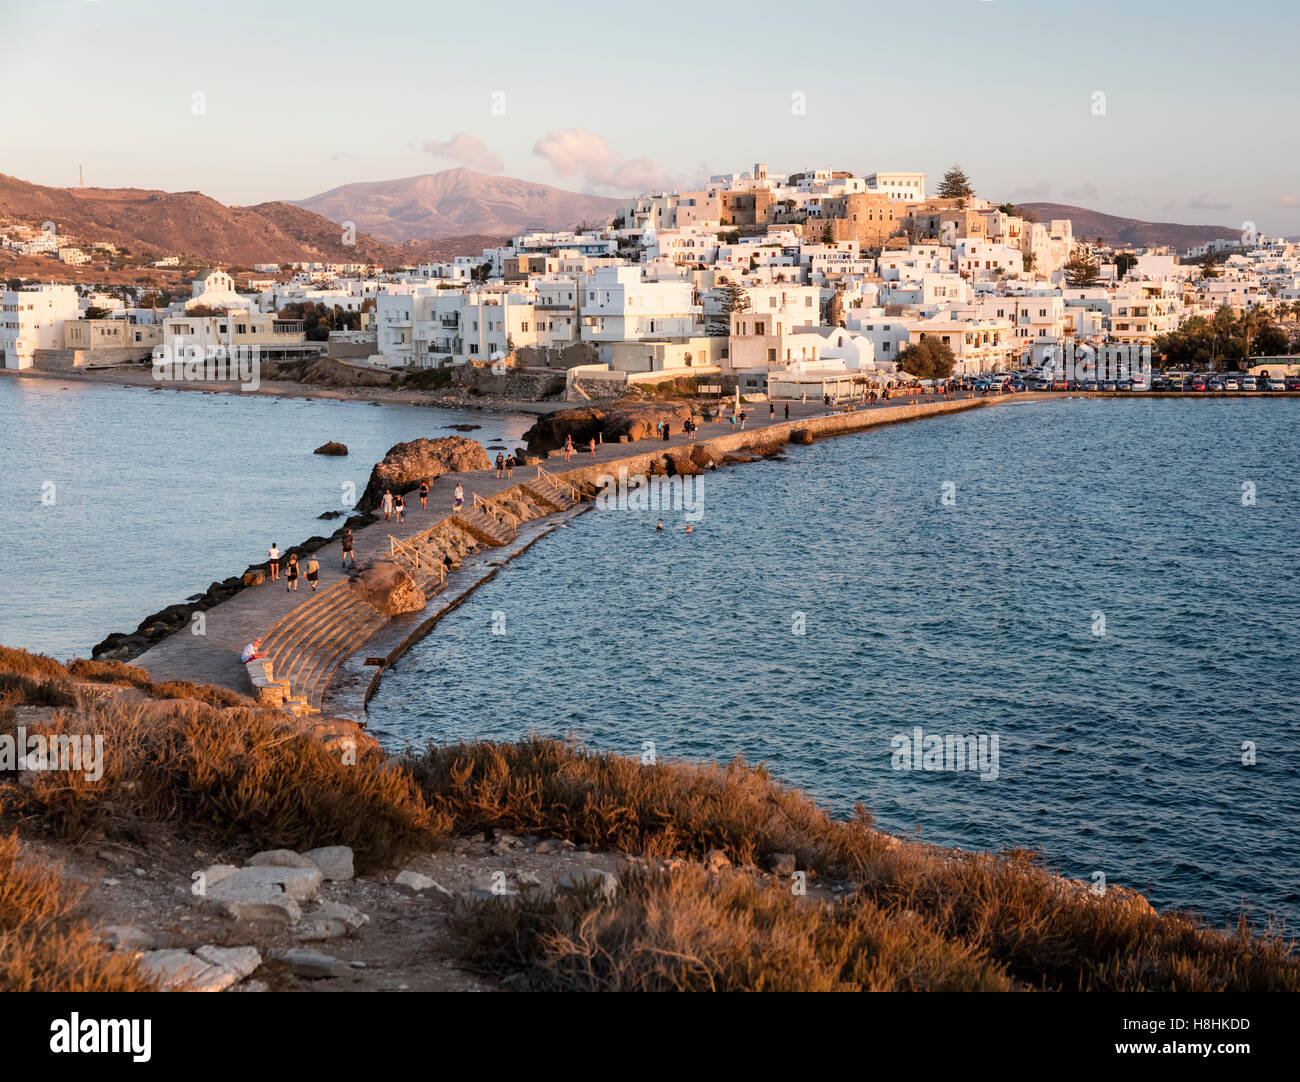 View of Naxos town from the Temple of Apollo at sunset. Naxos island in the Greek Cyclades Islands - Stock Image